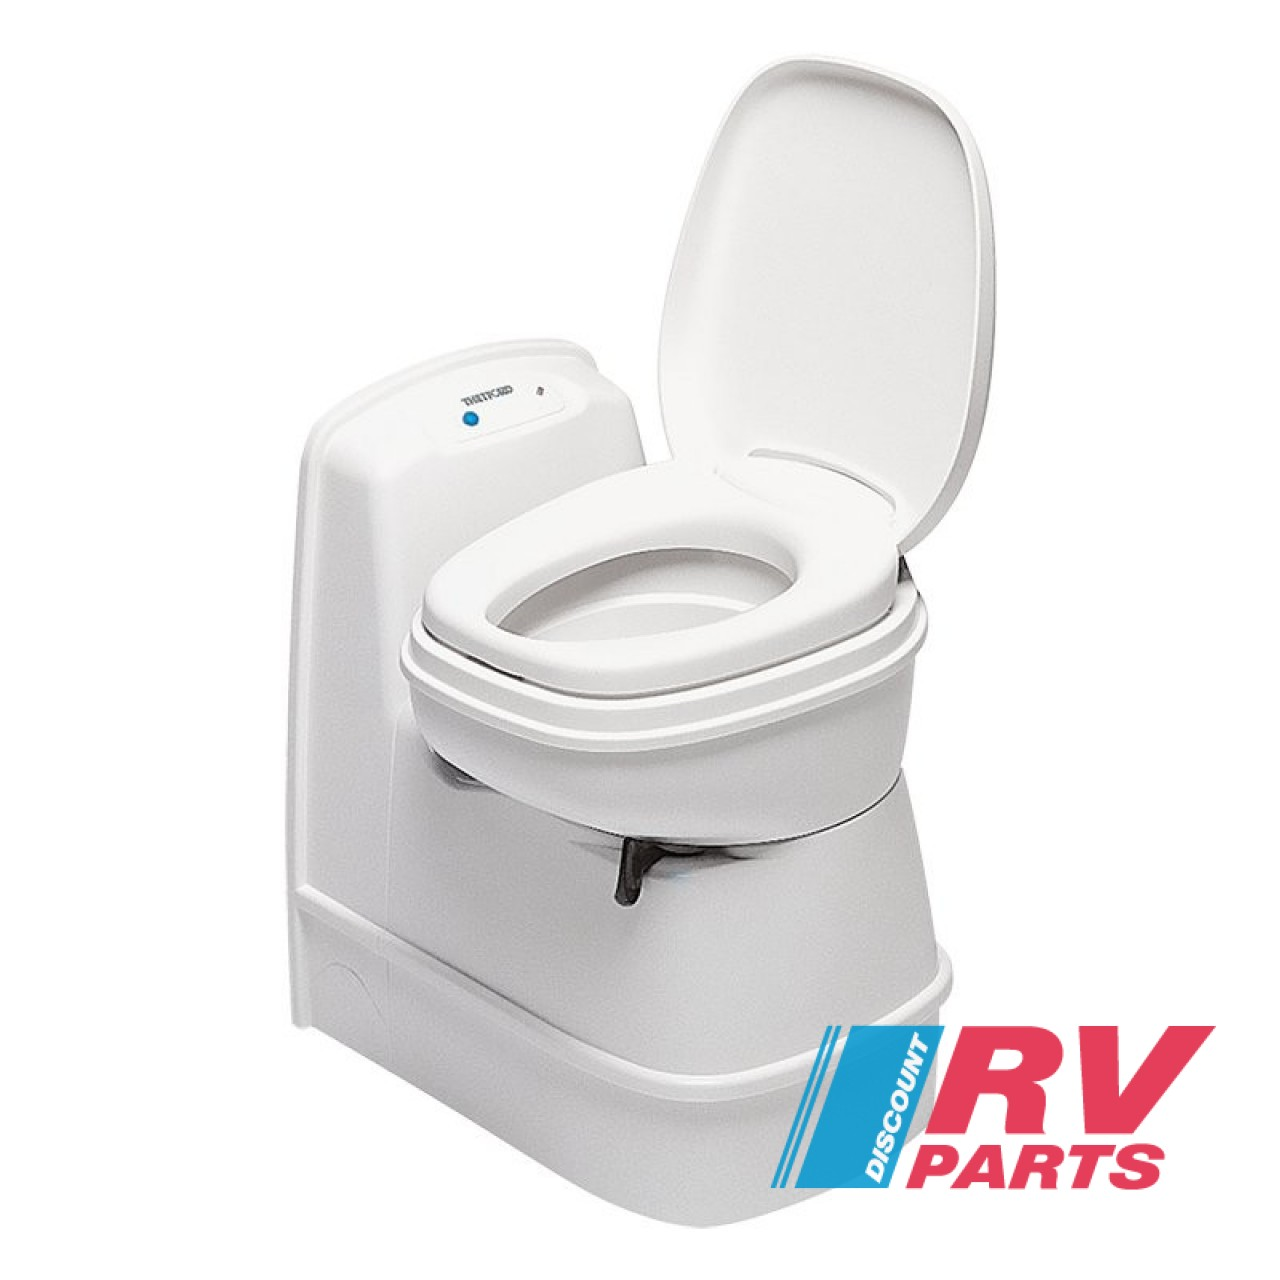 Thetford C250CS Toilet with low back : Discount RV Parts